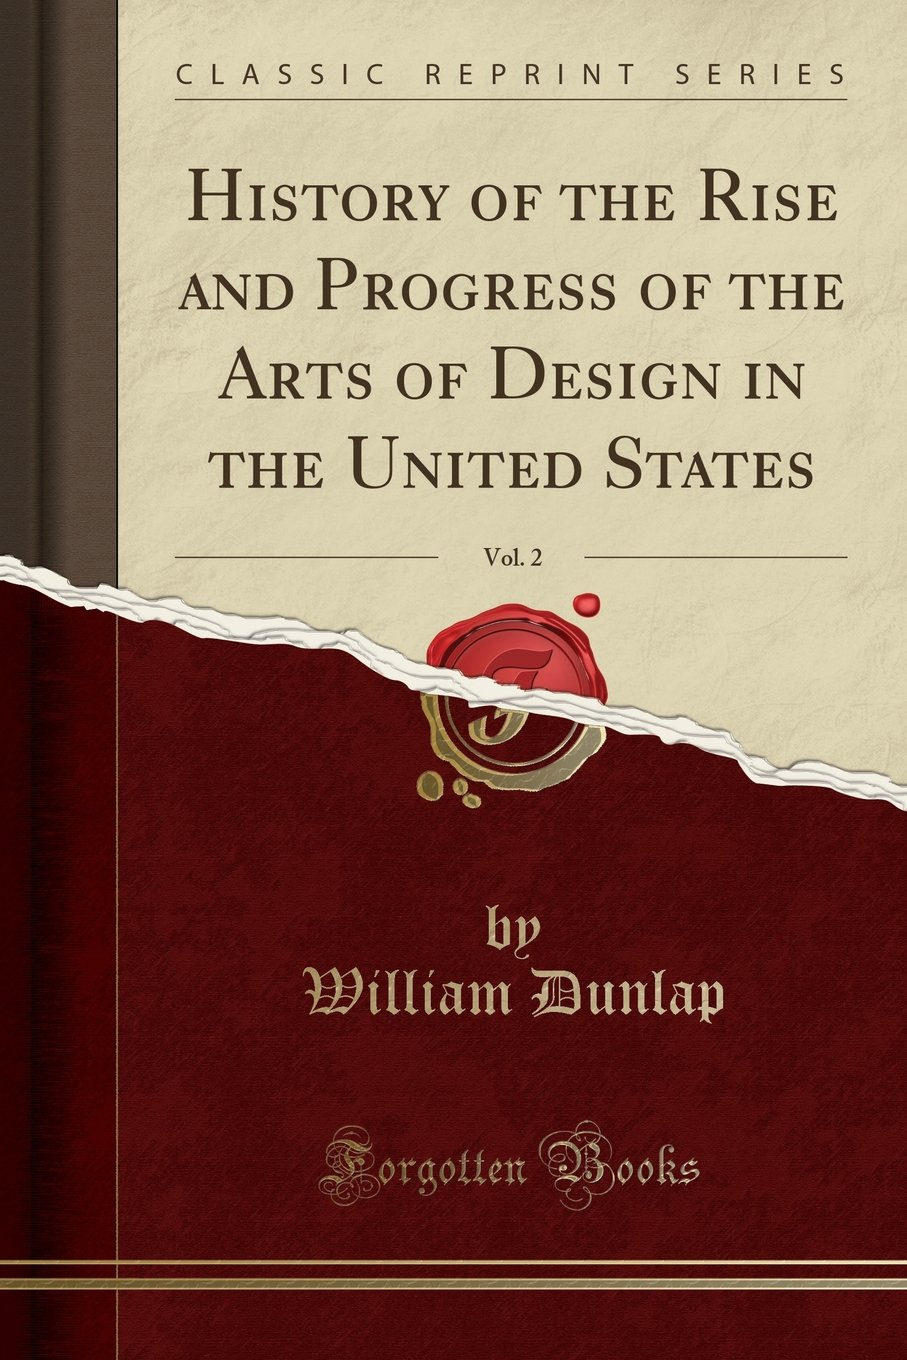 History of the Rise and Progress of the Arts of Design in the United States, Vol. 2 (Classic Reprint) pdf